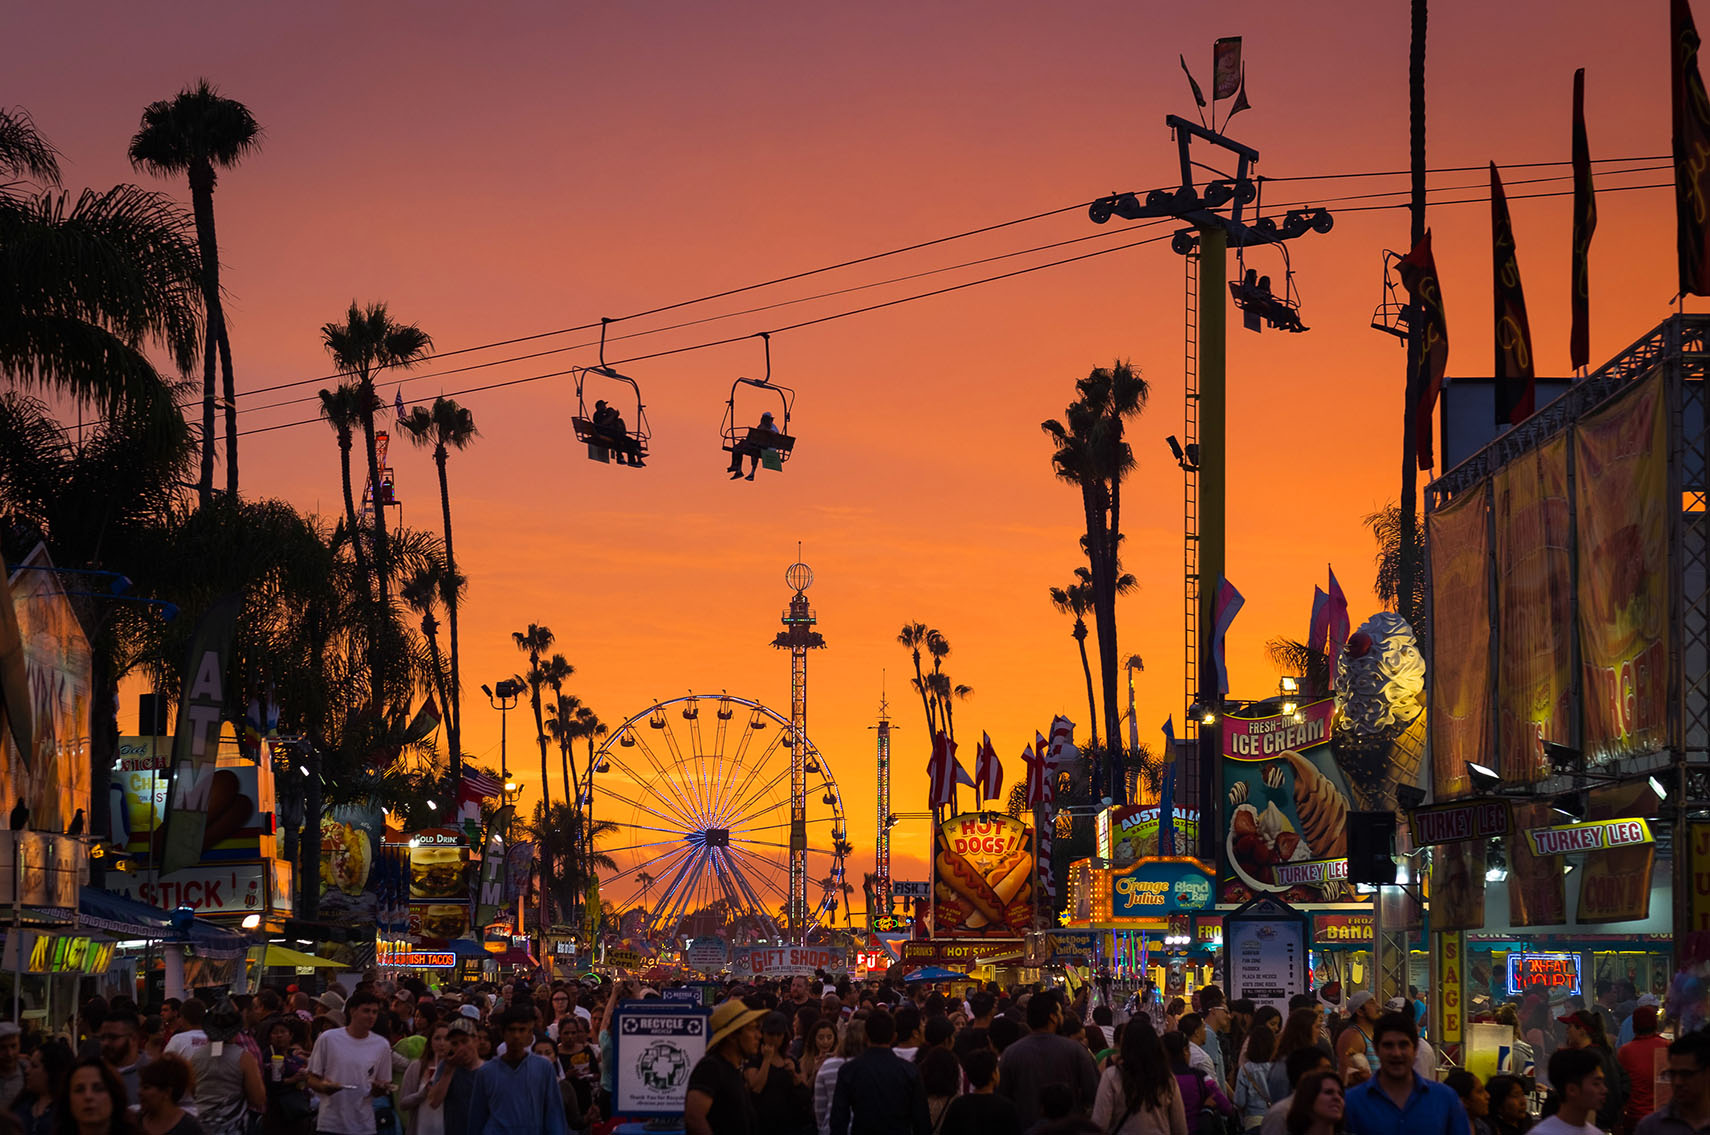 SD Fair Sunset